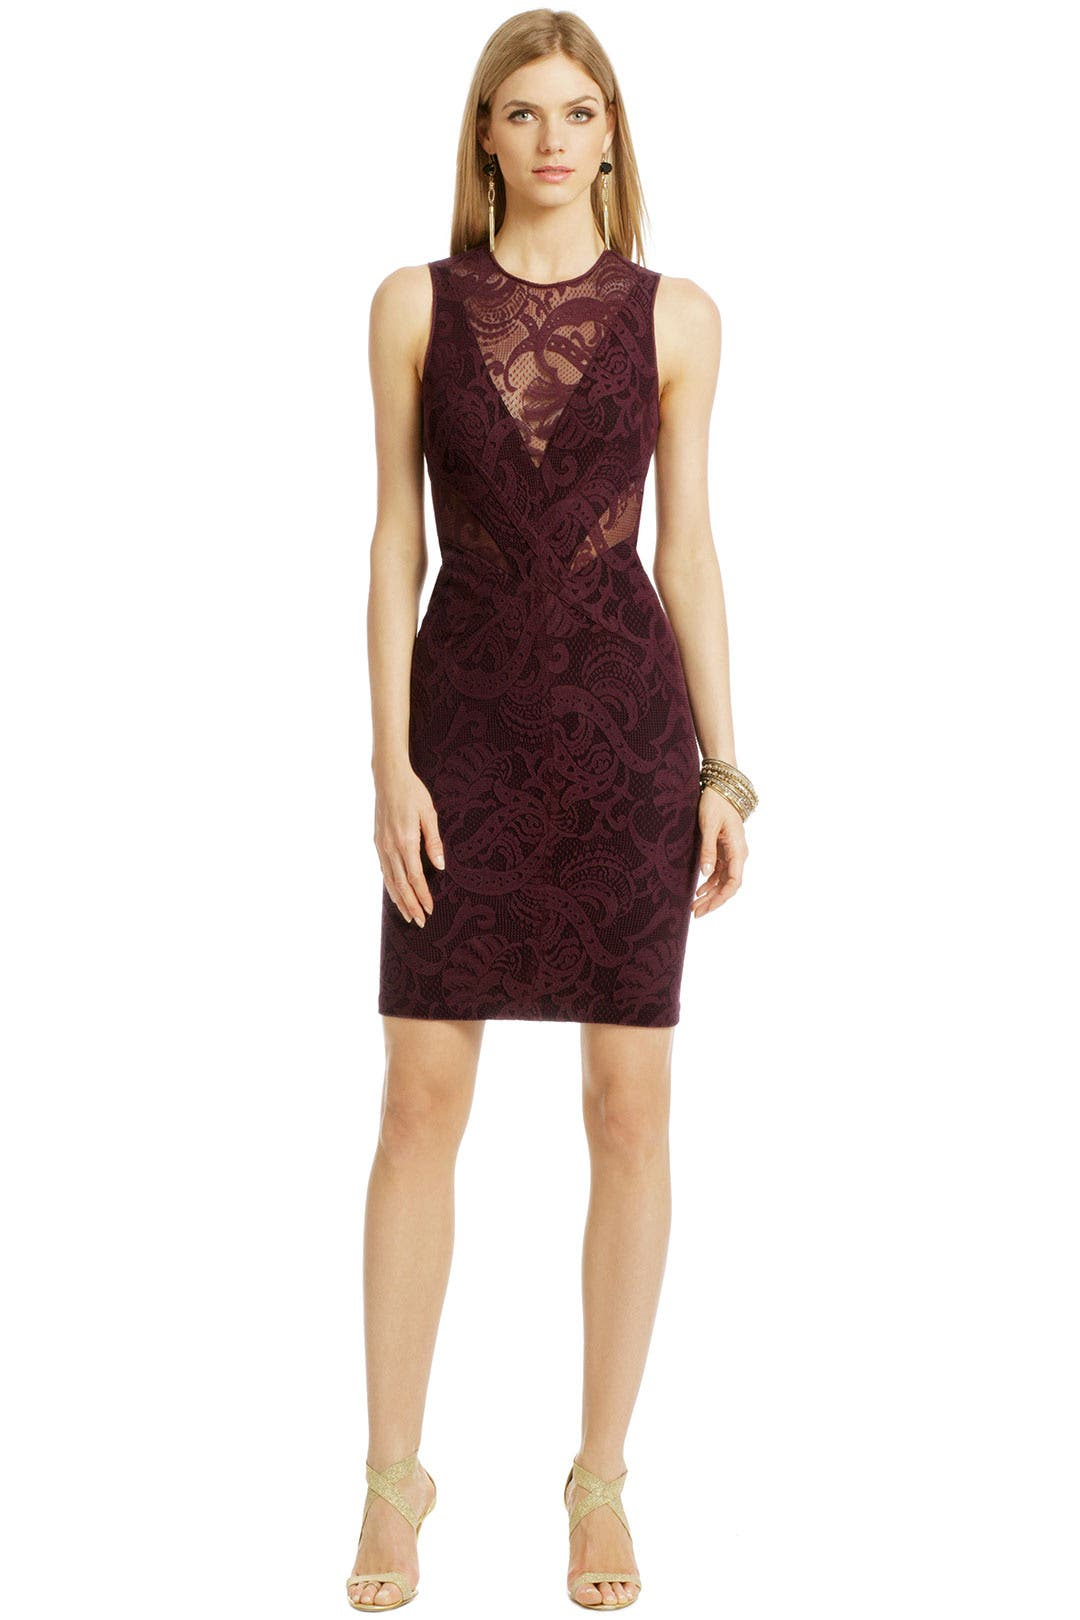 Sip Of Wine Dress By Yigal Azrou 235 L For 169 Rent The Runway